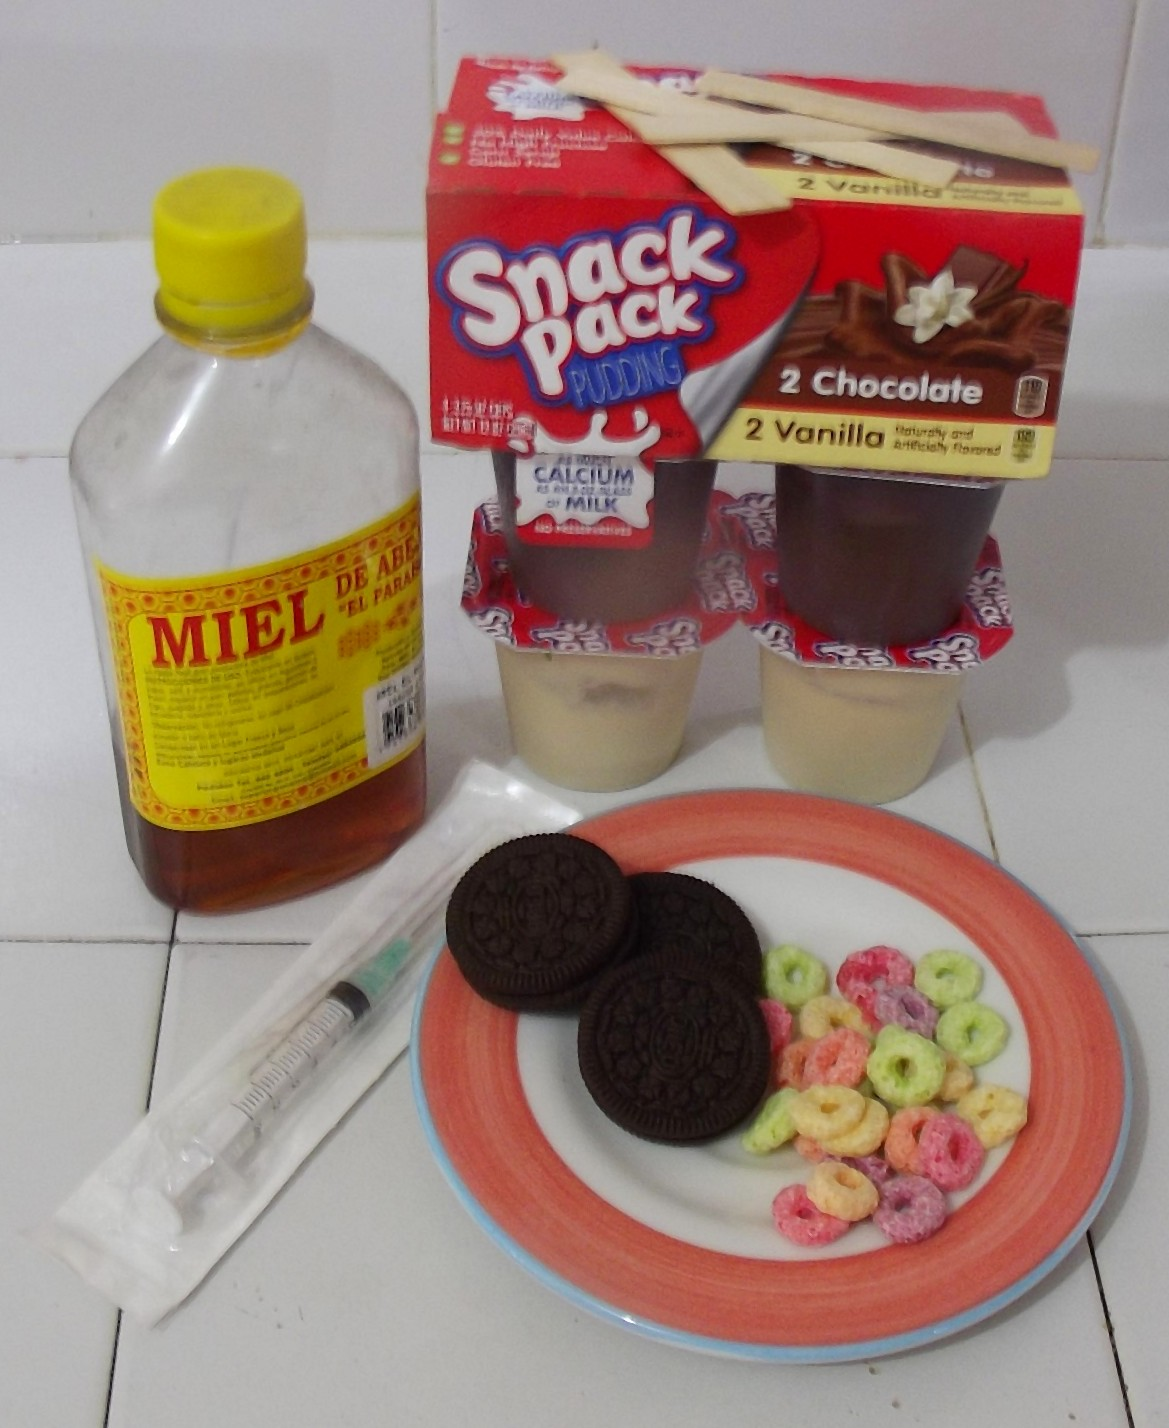 Picture of Hack - Snack Pack Pudding